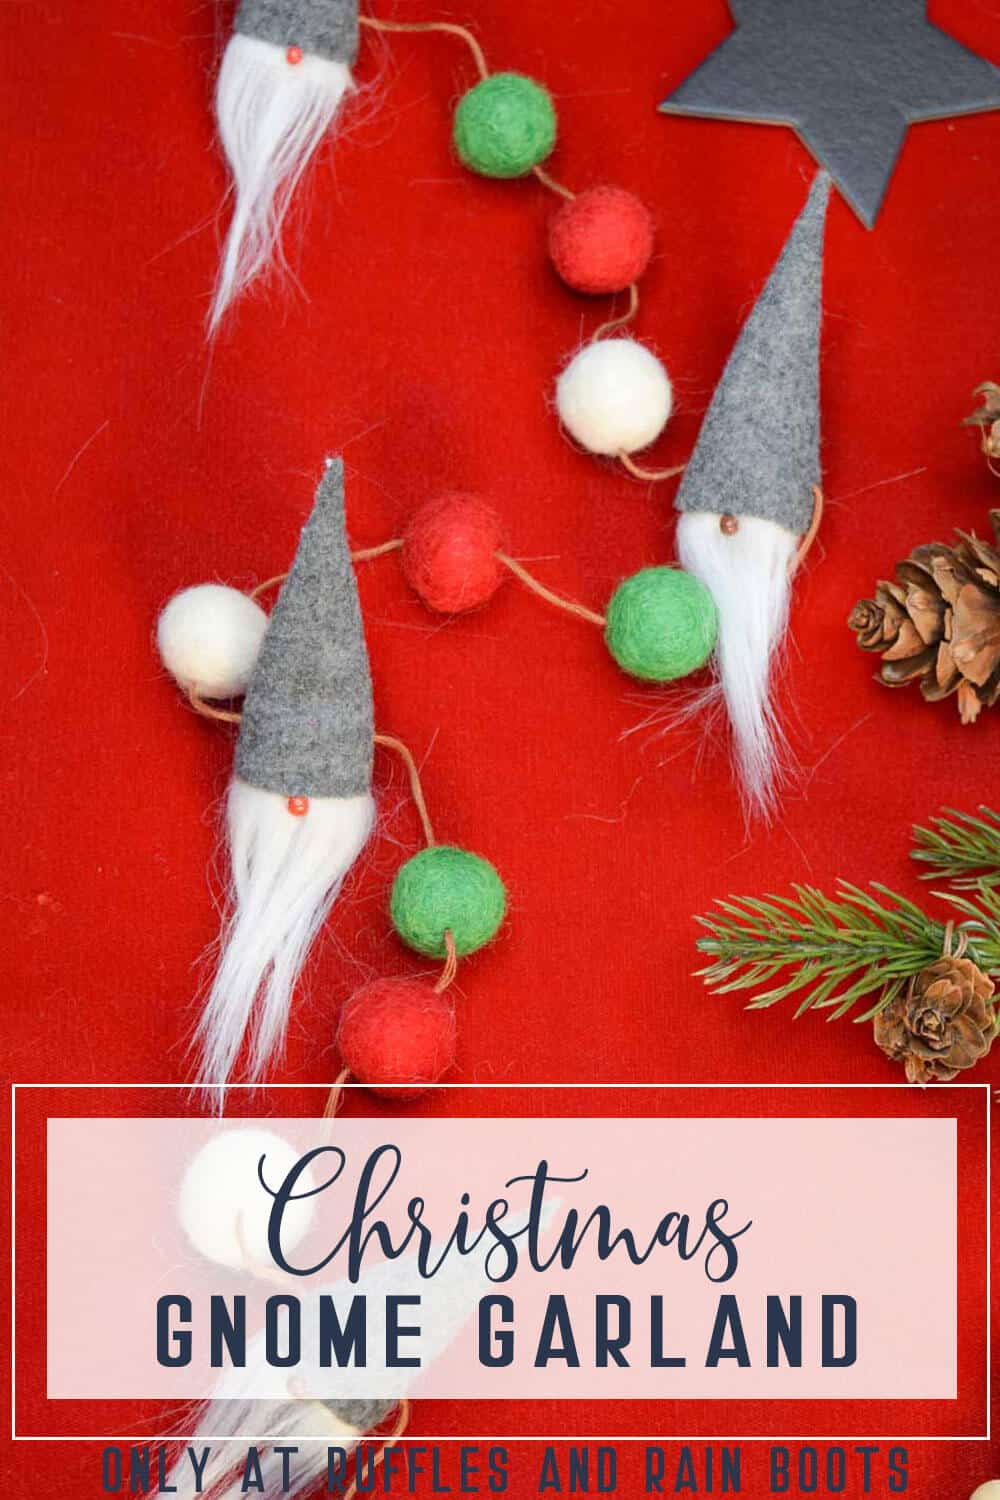 Adorable Christmas gnome garland DIY on a red background with text which reads chrismas gnome garland